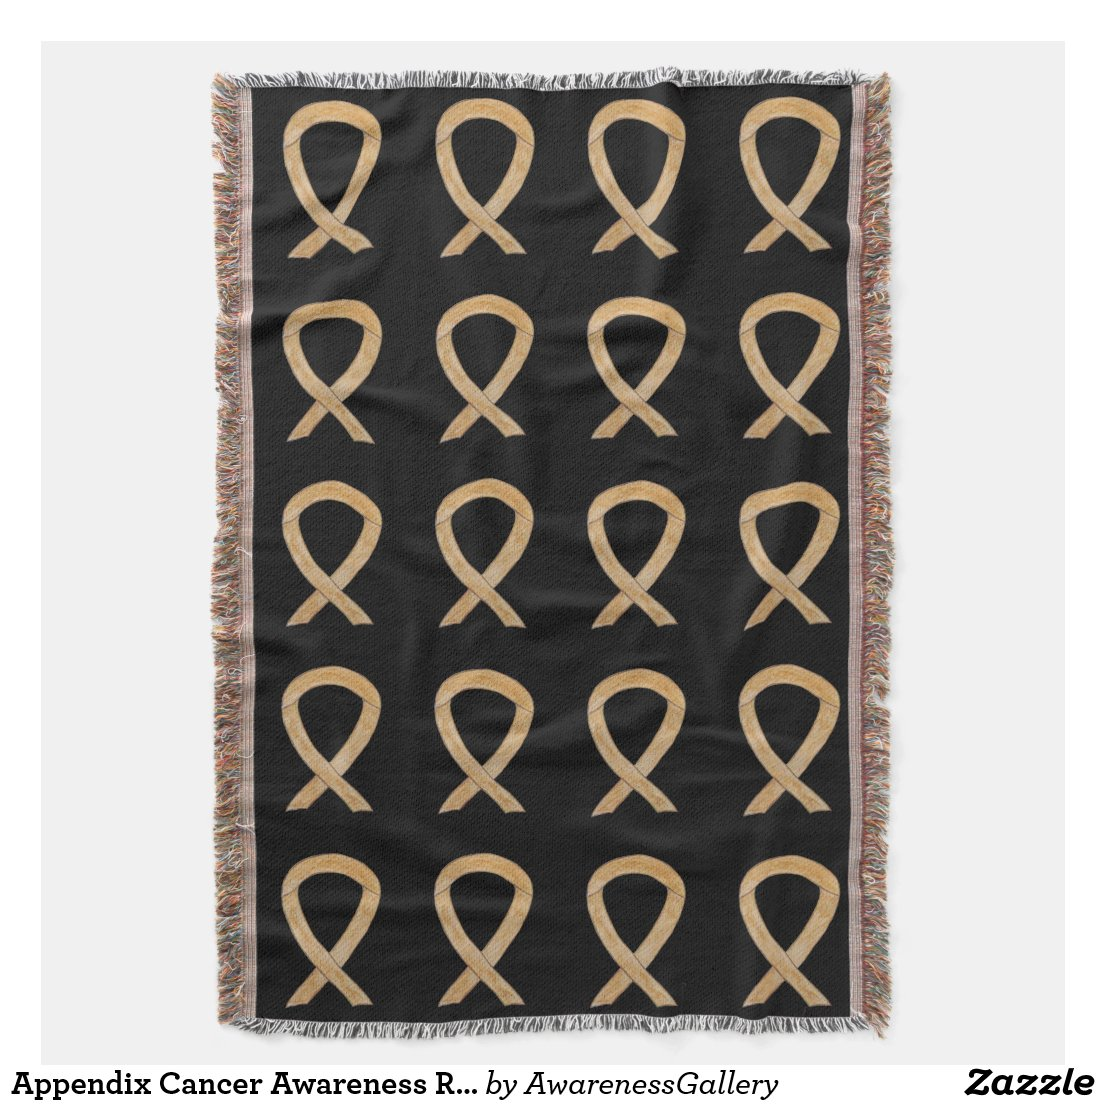 Appendix Cancer Awareness Ribbon Art Throw Blanket